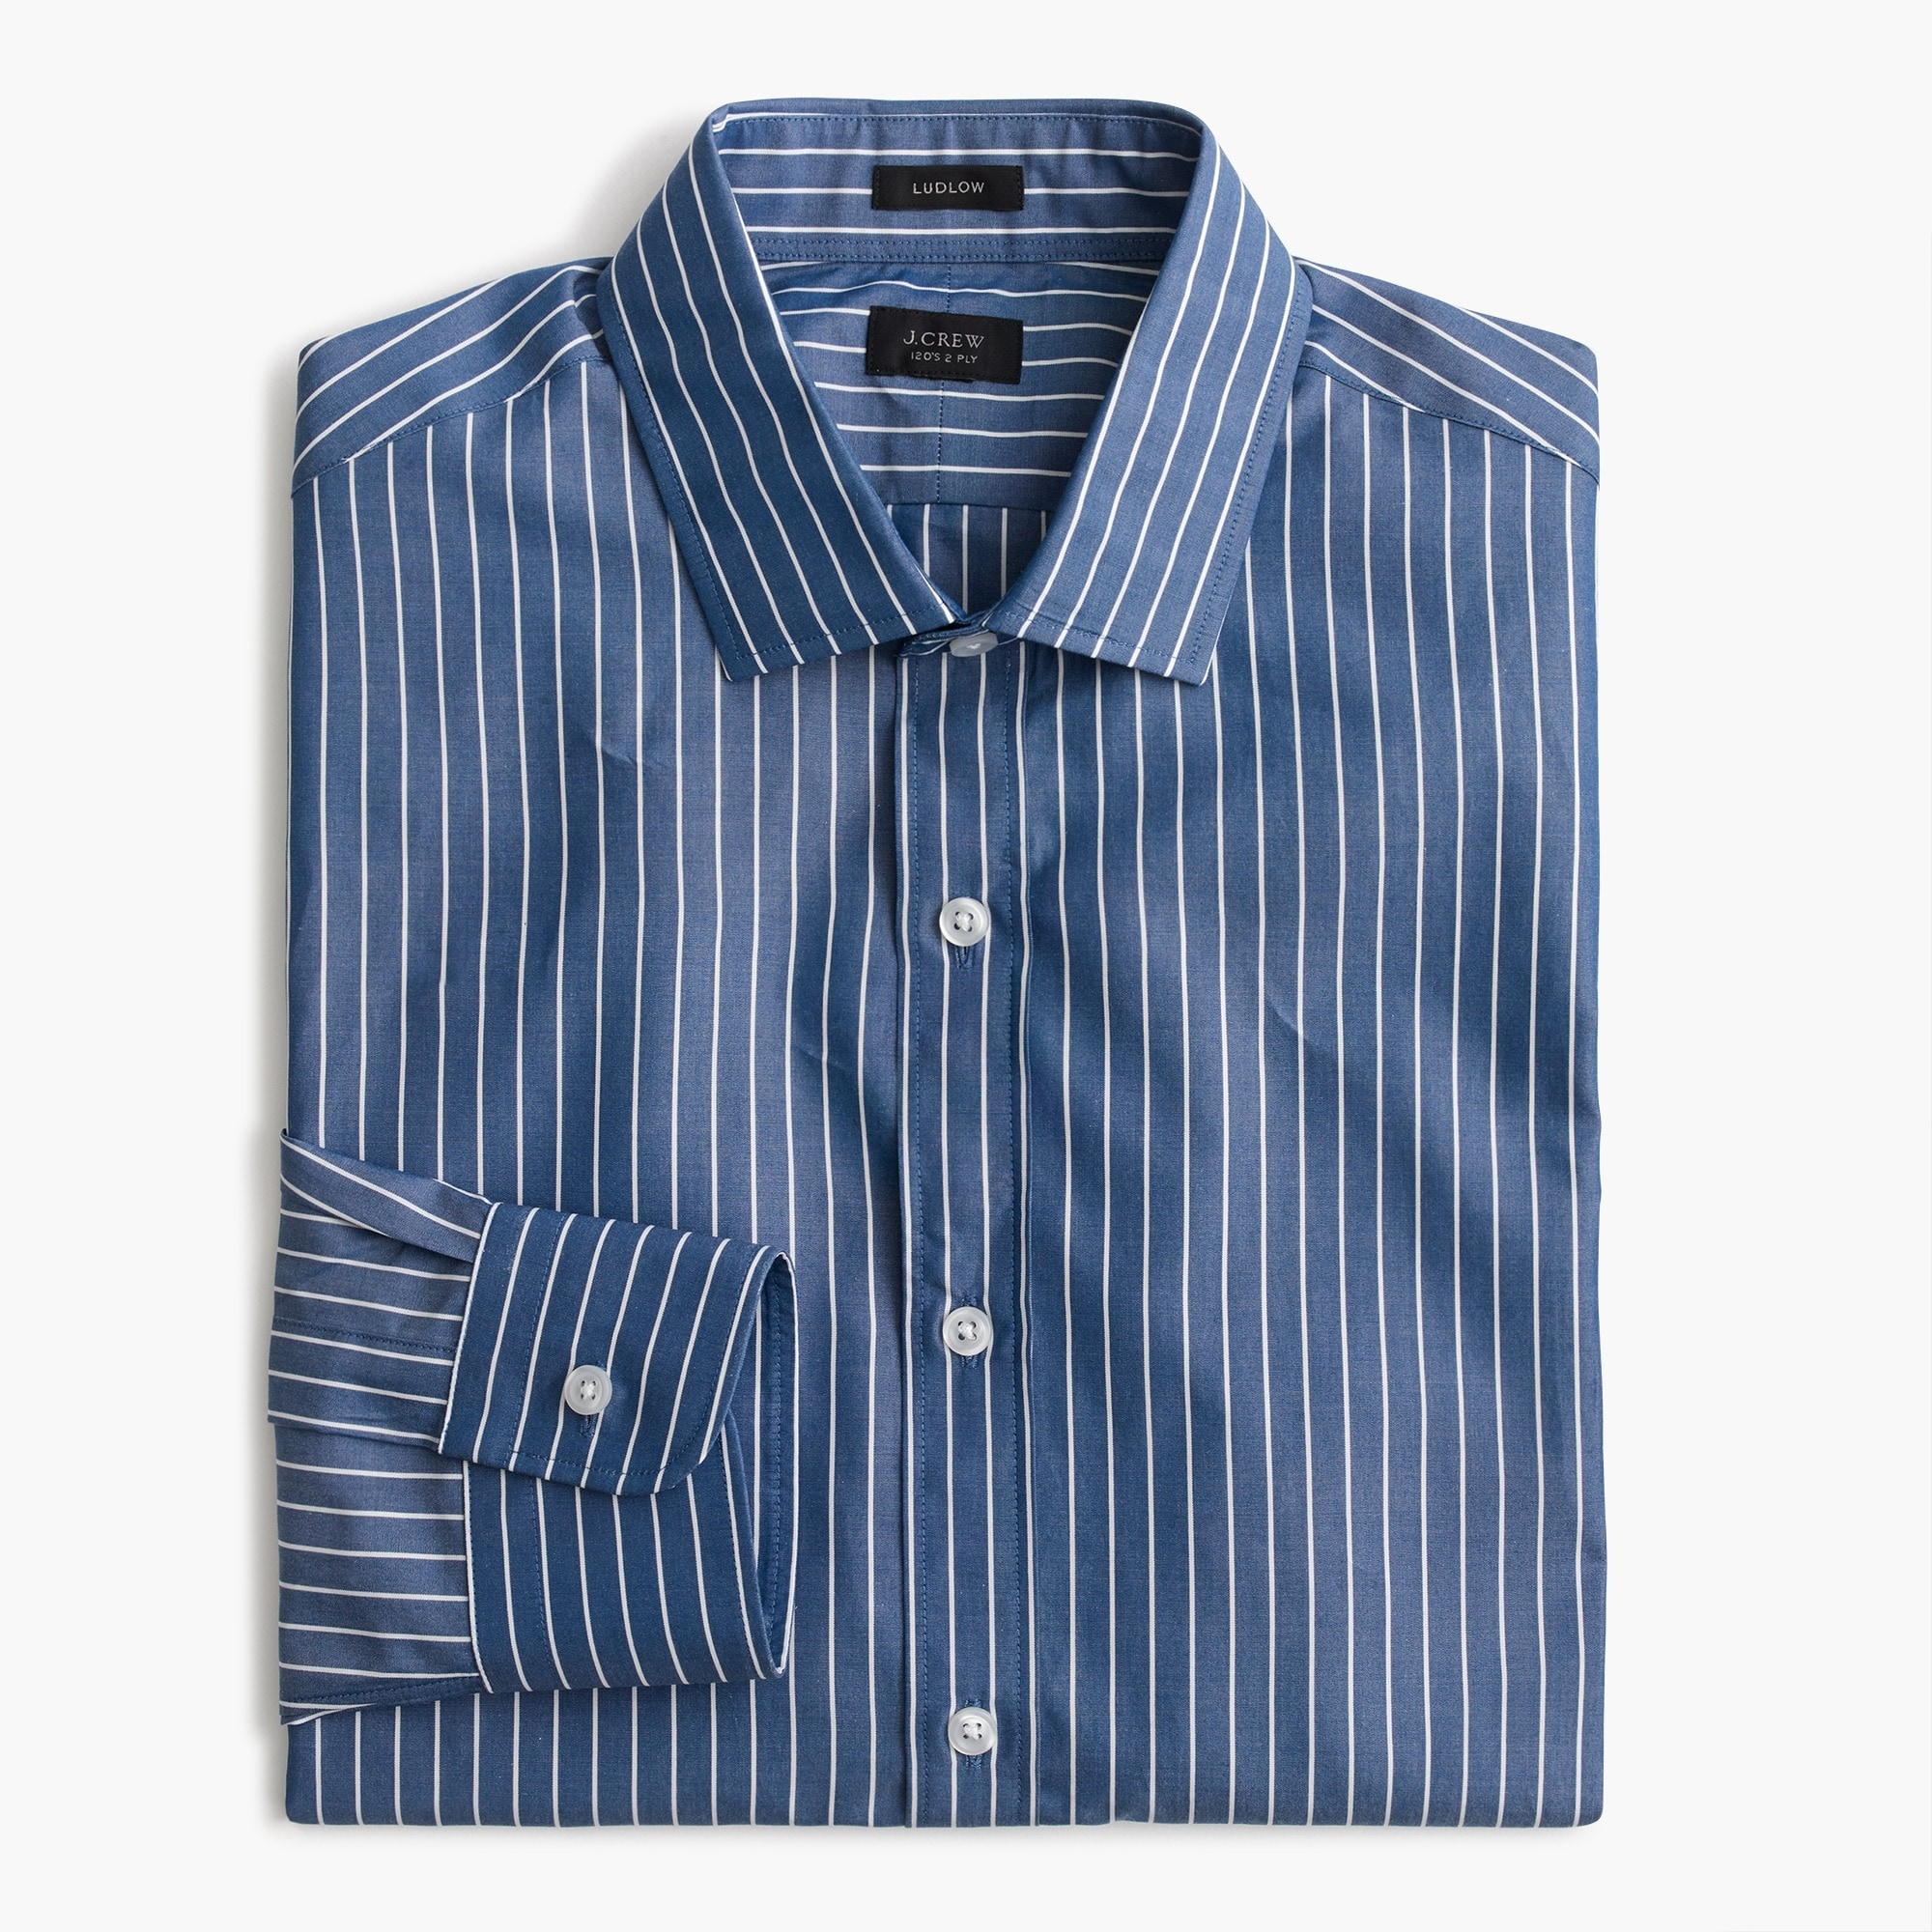 Ludlow Slim-fit shirt in blue and white stripe